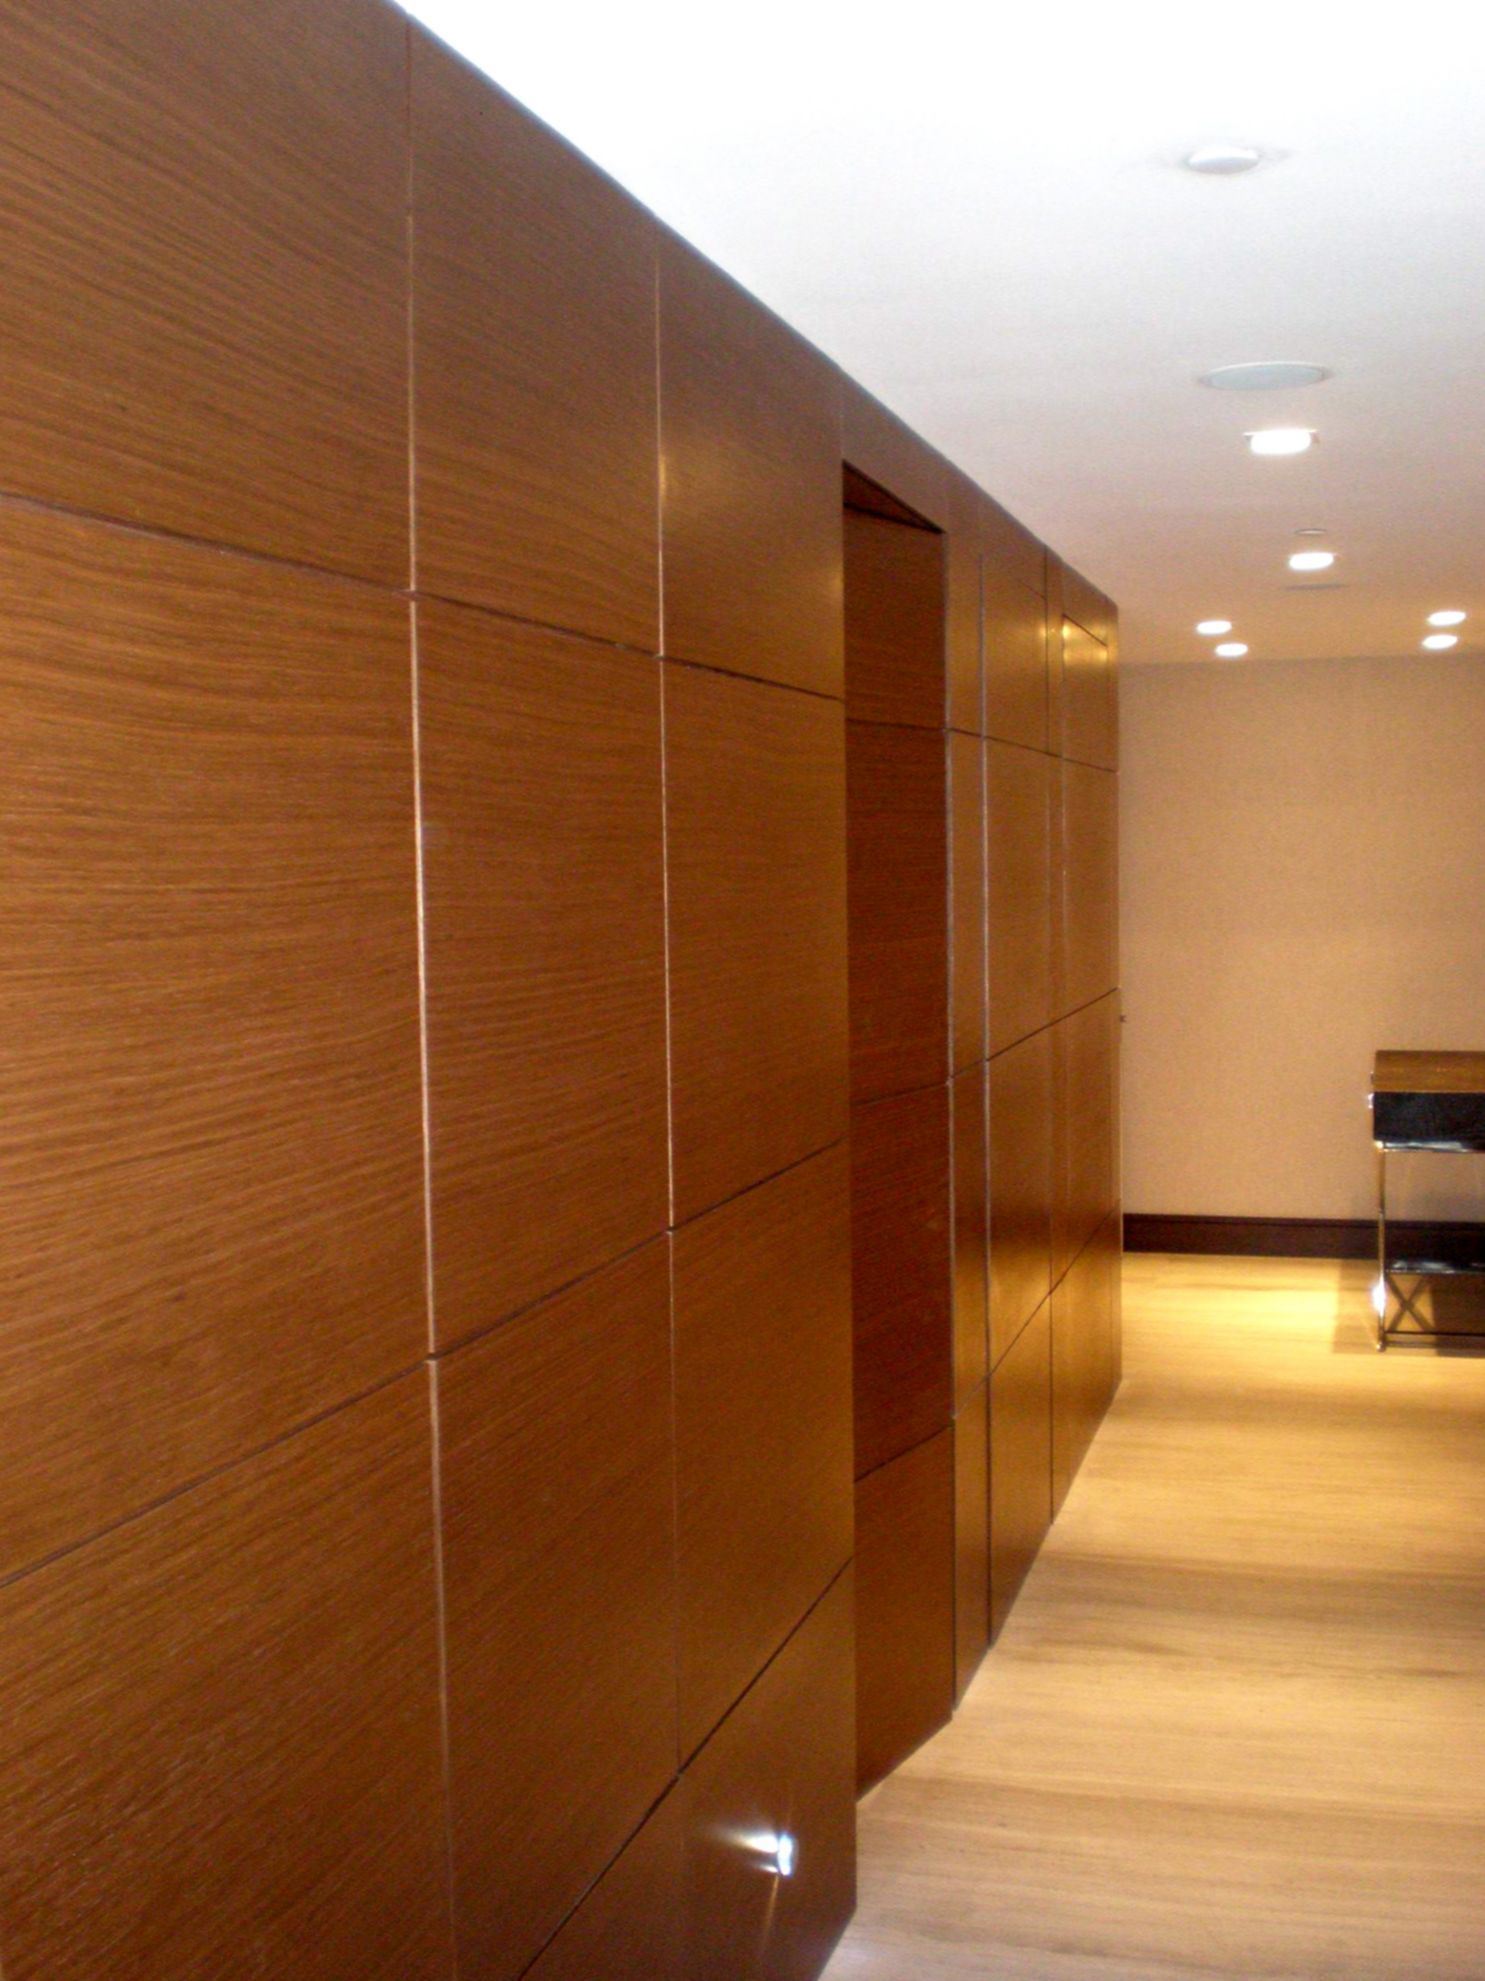 Interior Wood Paneling: Amazing Wood Wall Covering Ideas 140 (With Images